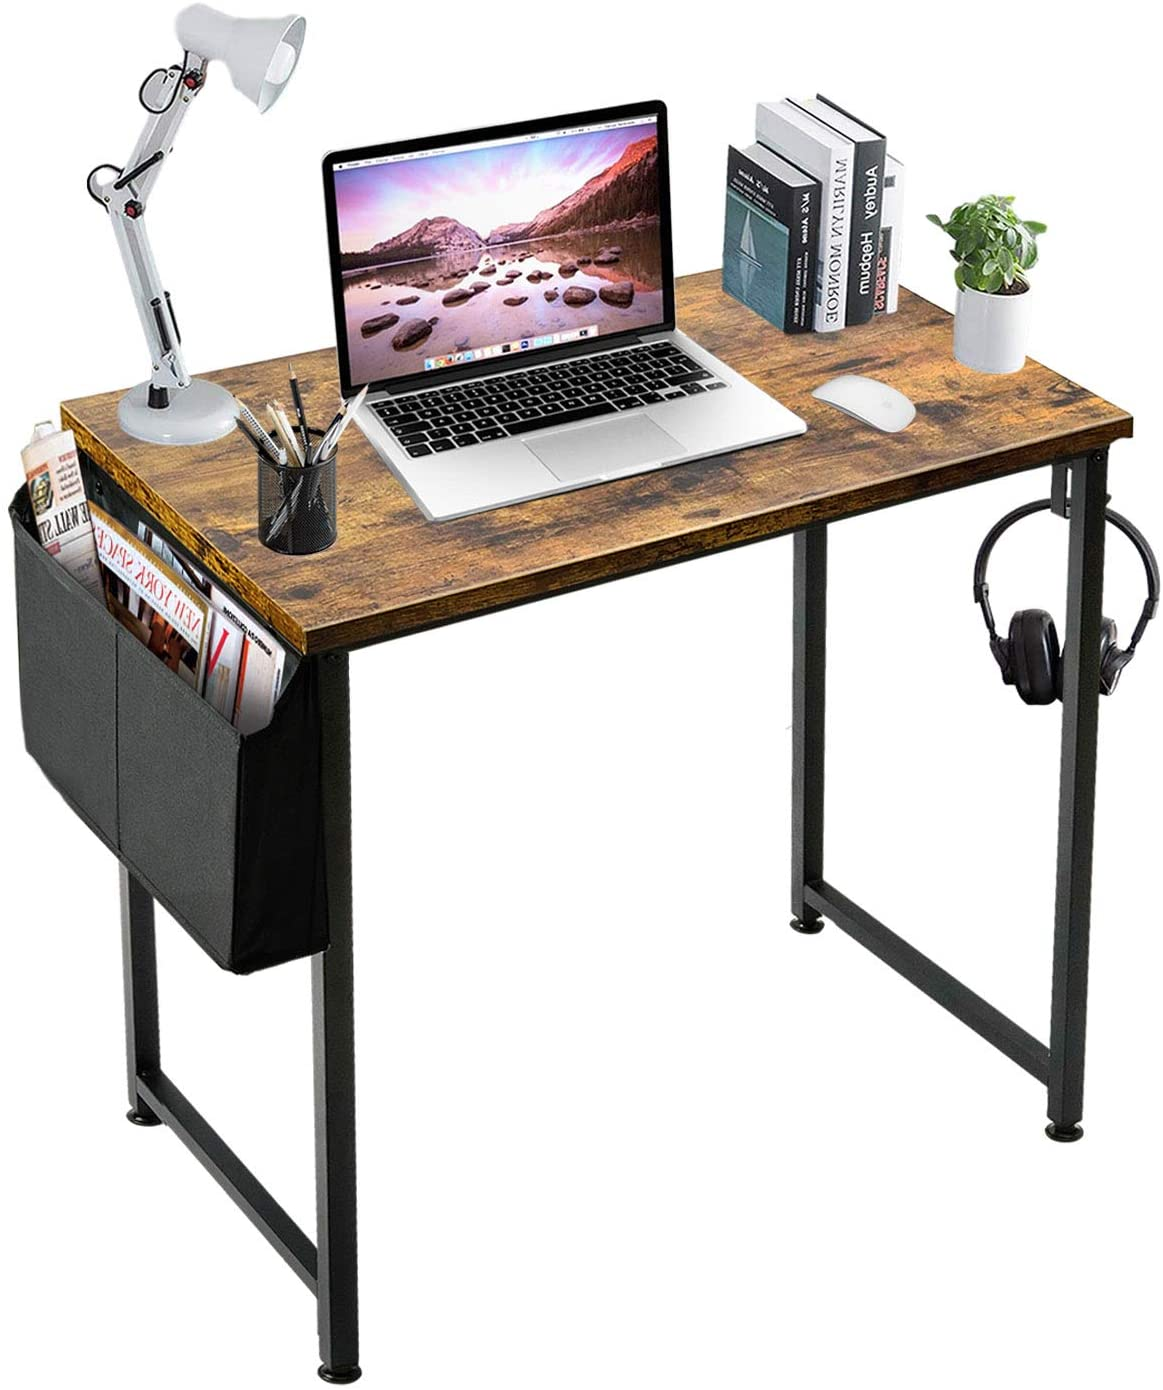 Small Computer Desk Study Table for Small Spaces Home Office 31 Inch Rustic Student Writing Des with Storage Bag,Brown